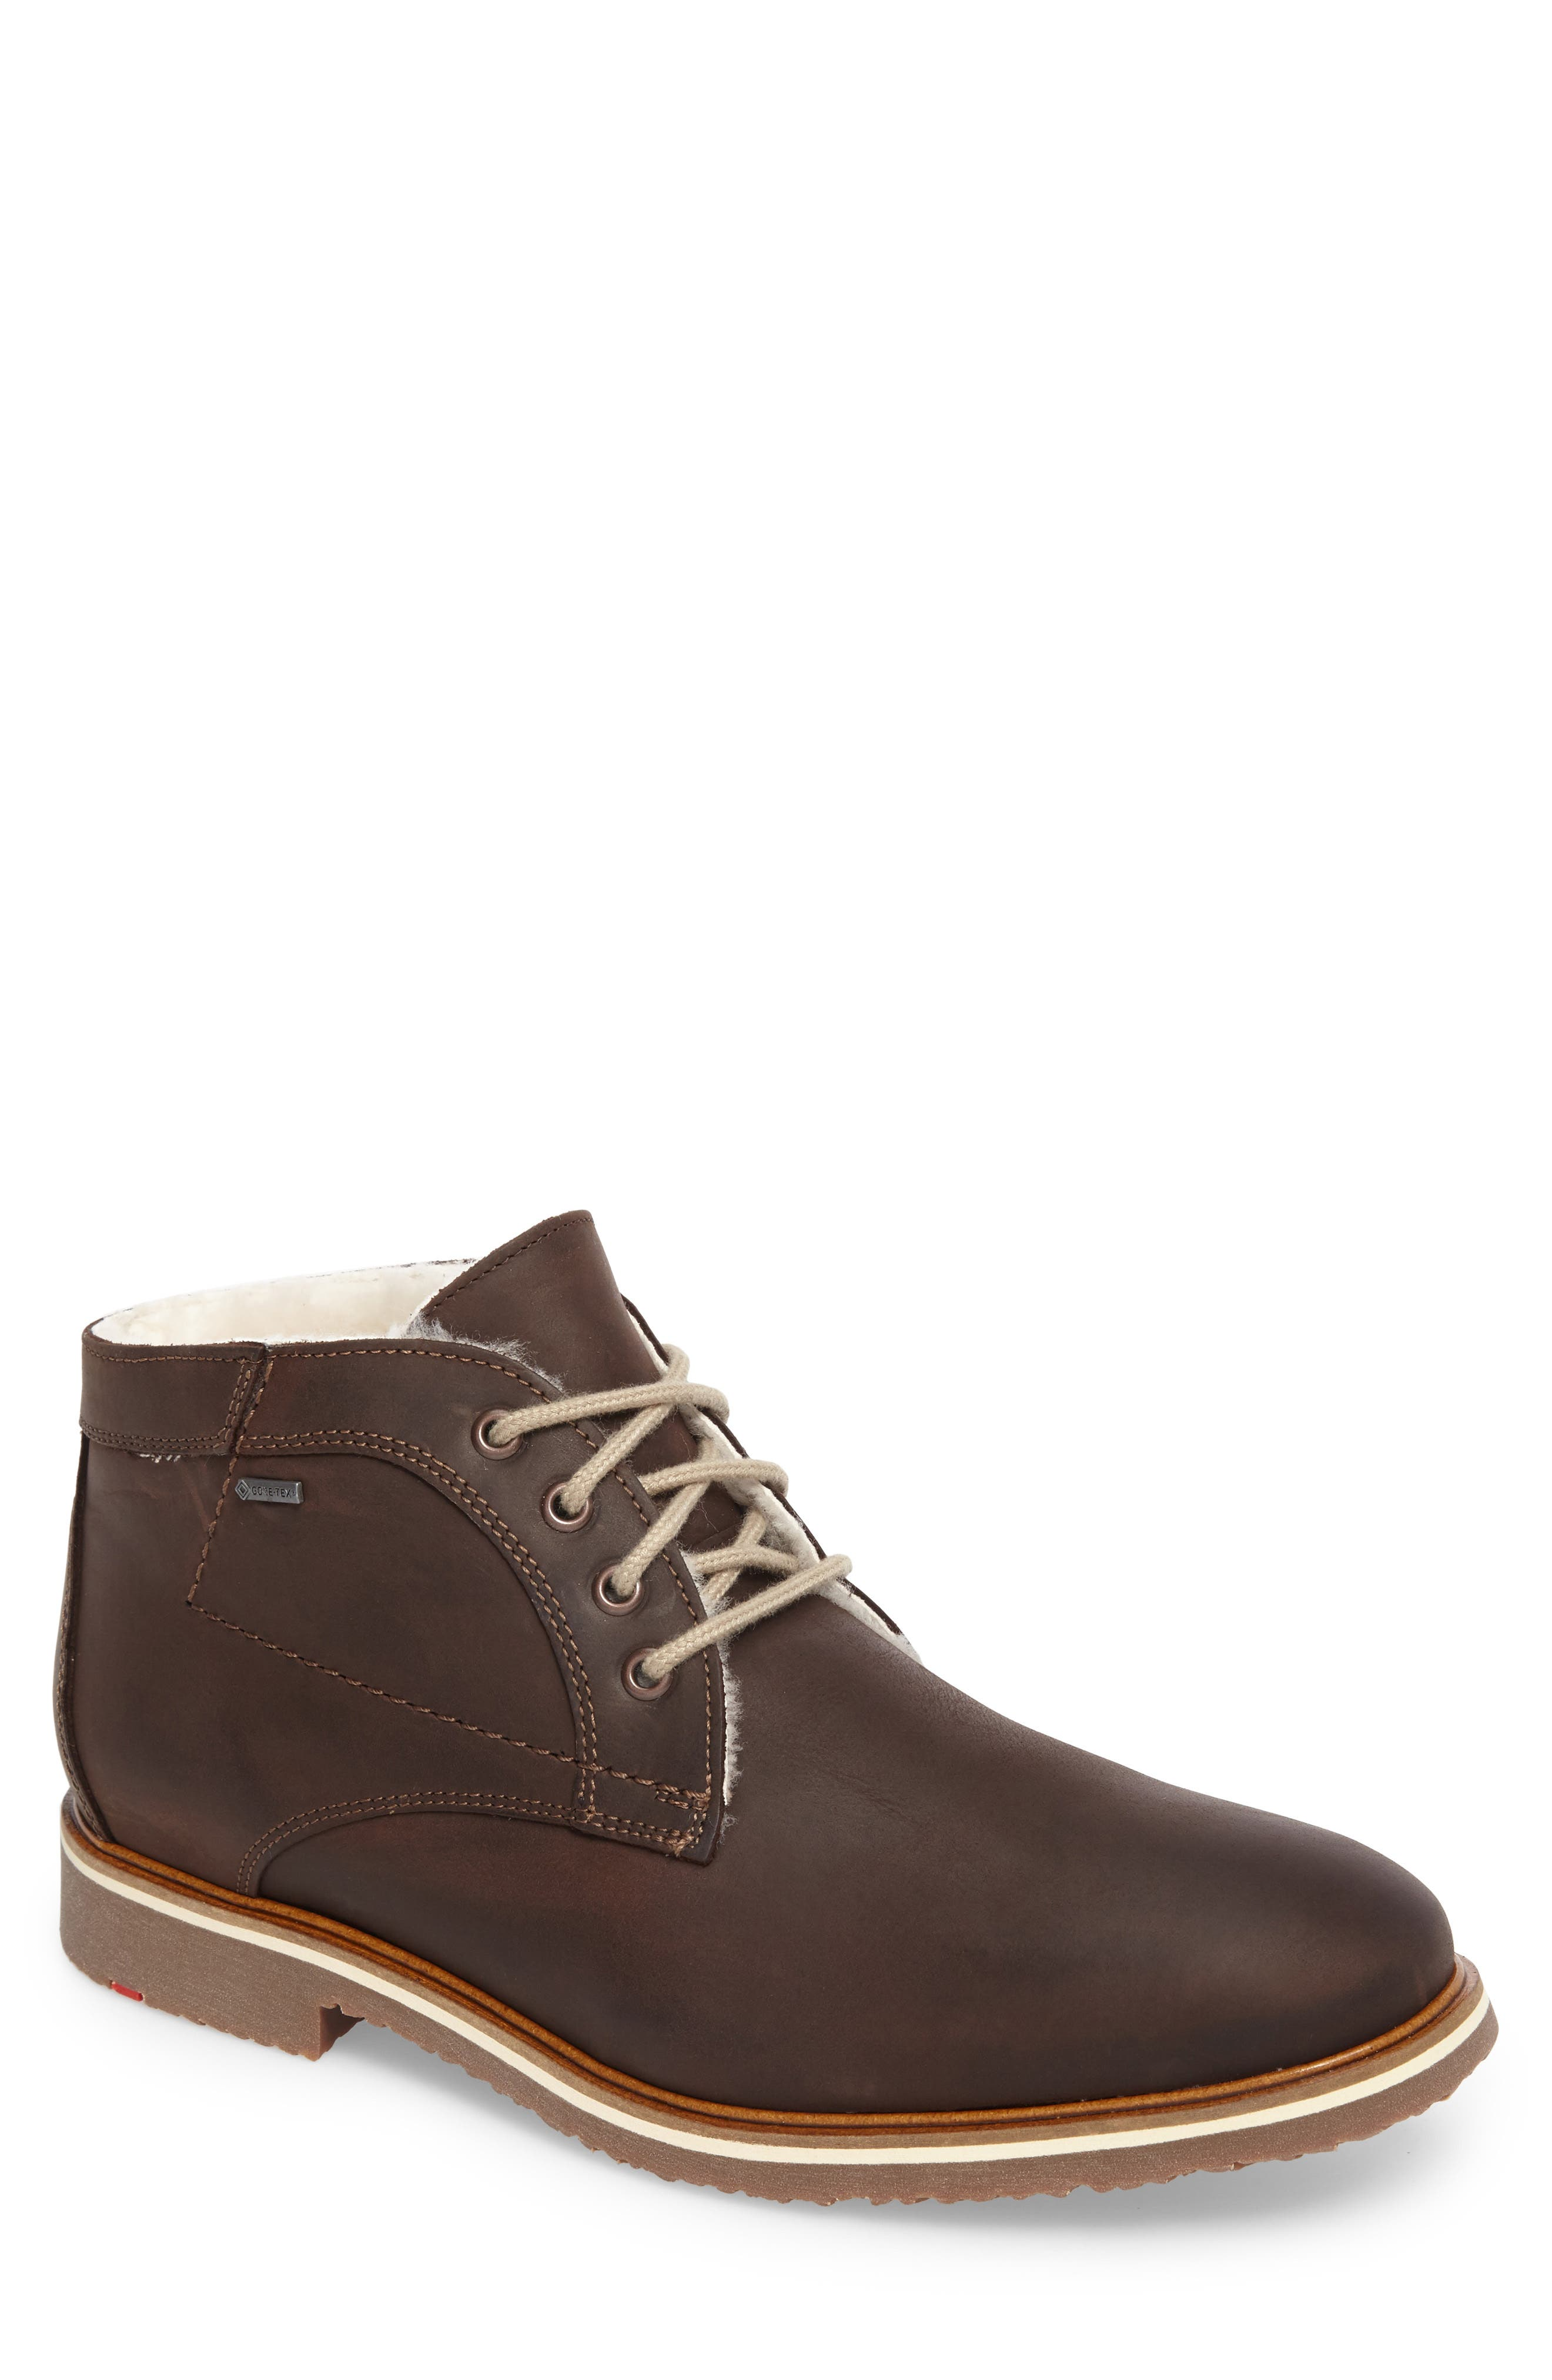 Varus Waterproof Shearlng Lined Chukka Boot,                             Main thumbnail 1, color,                             EBONY LEATHER